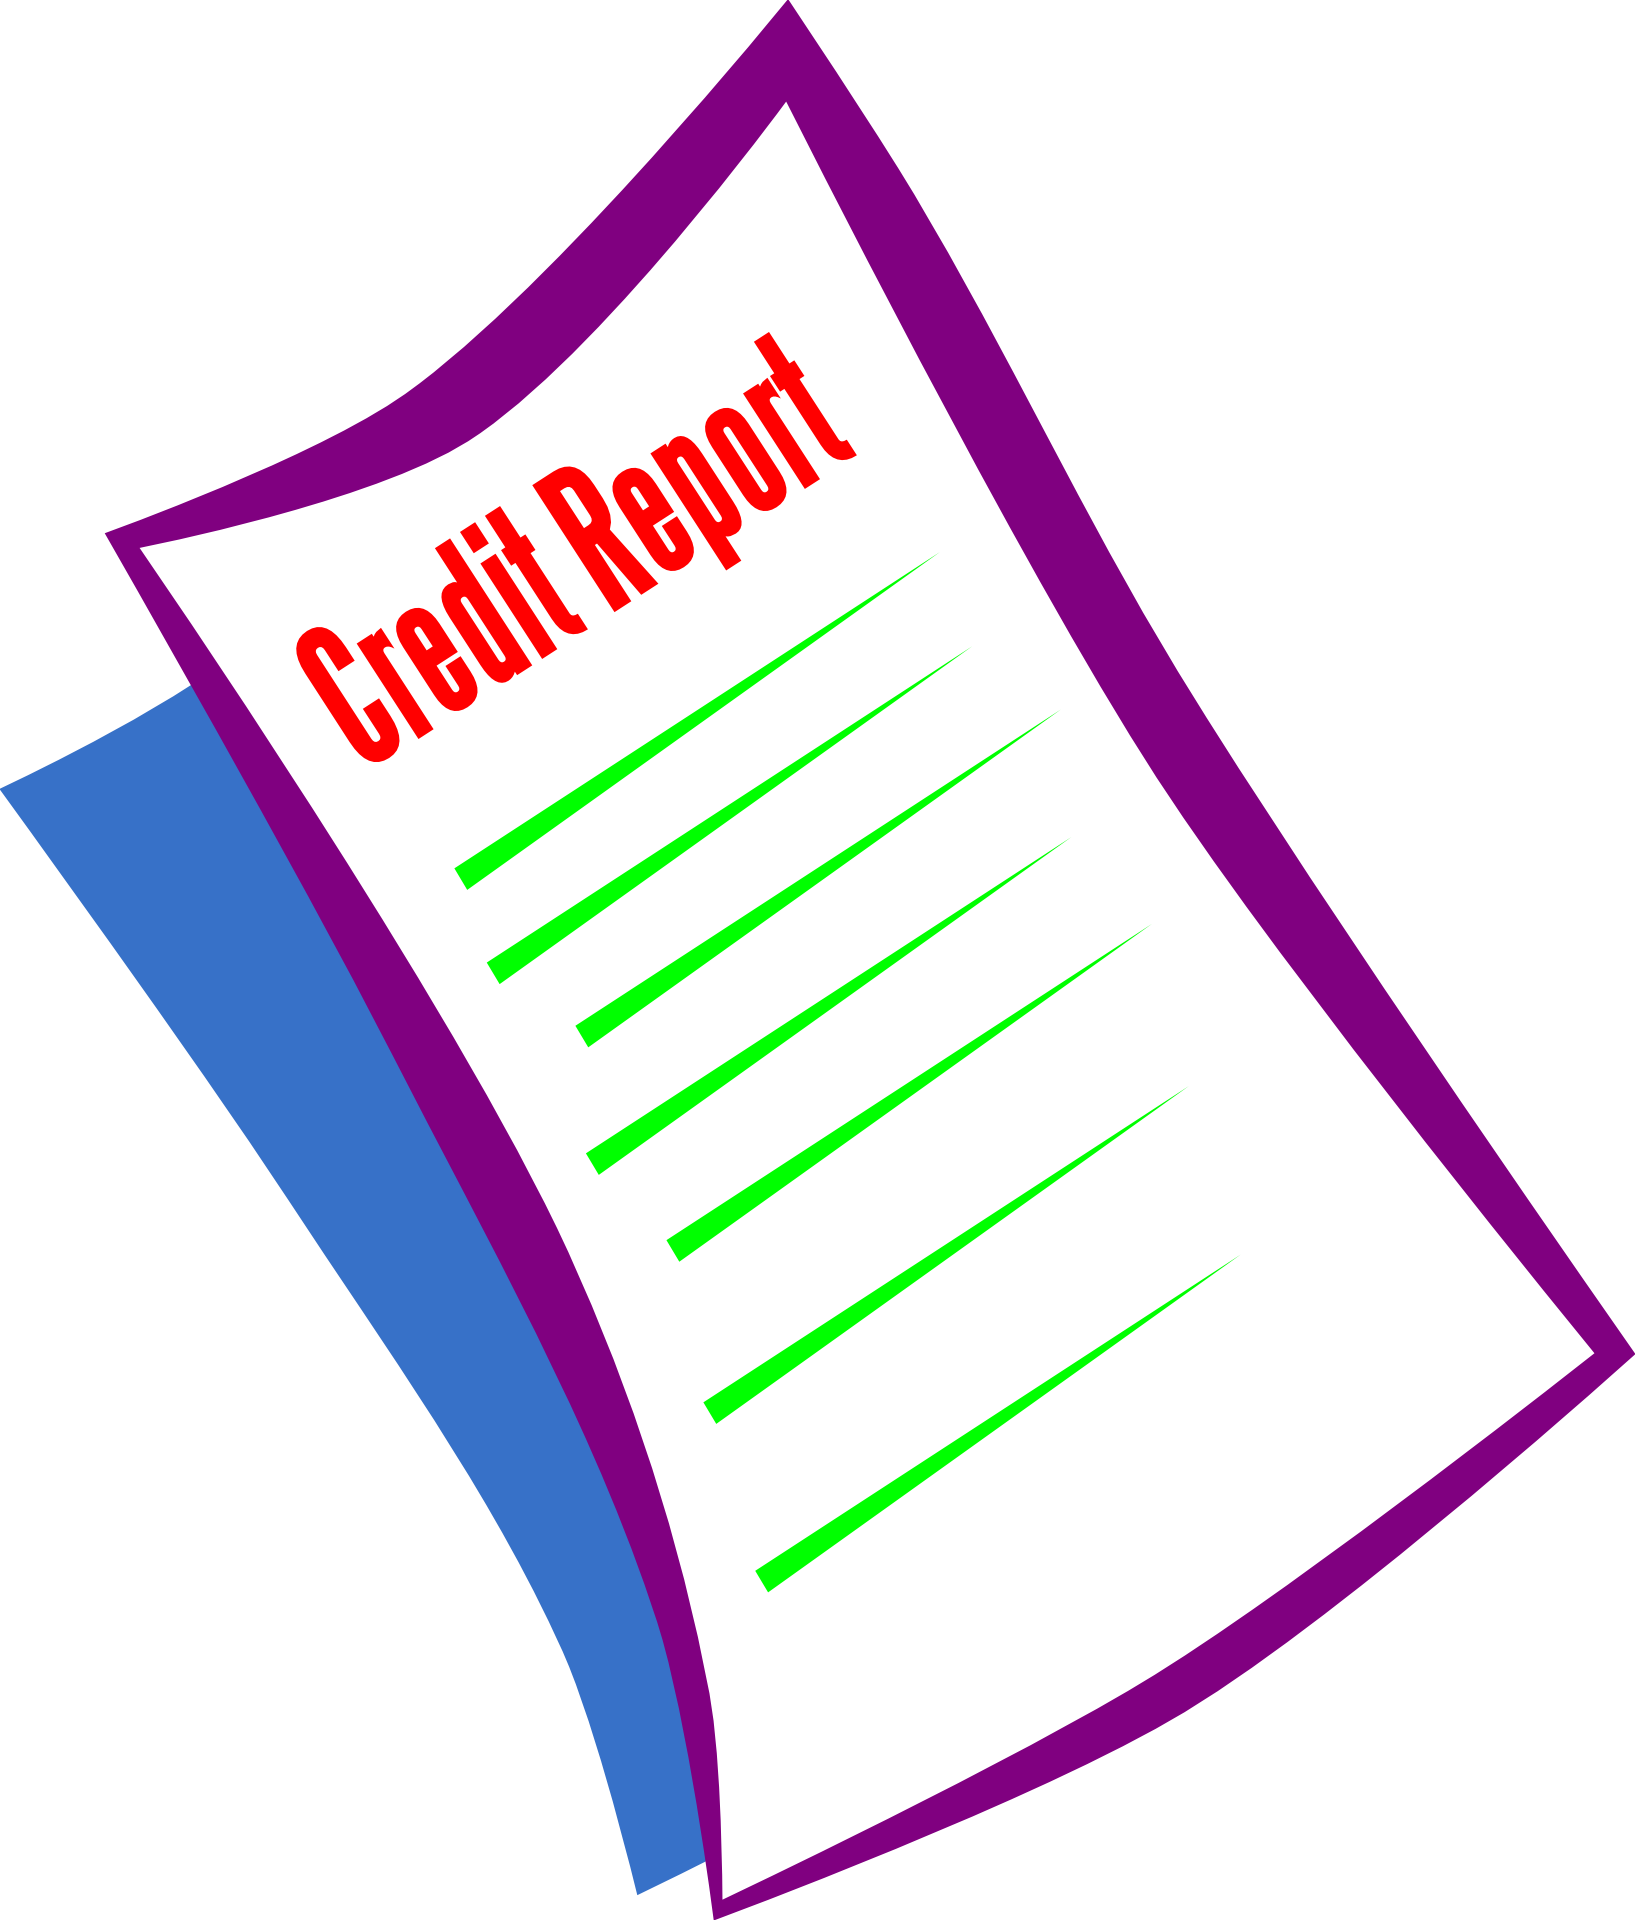 Money check clipart image transparent stock Commercial Credit Checks In South Africa - Credit Check Reports ... image transparent stock